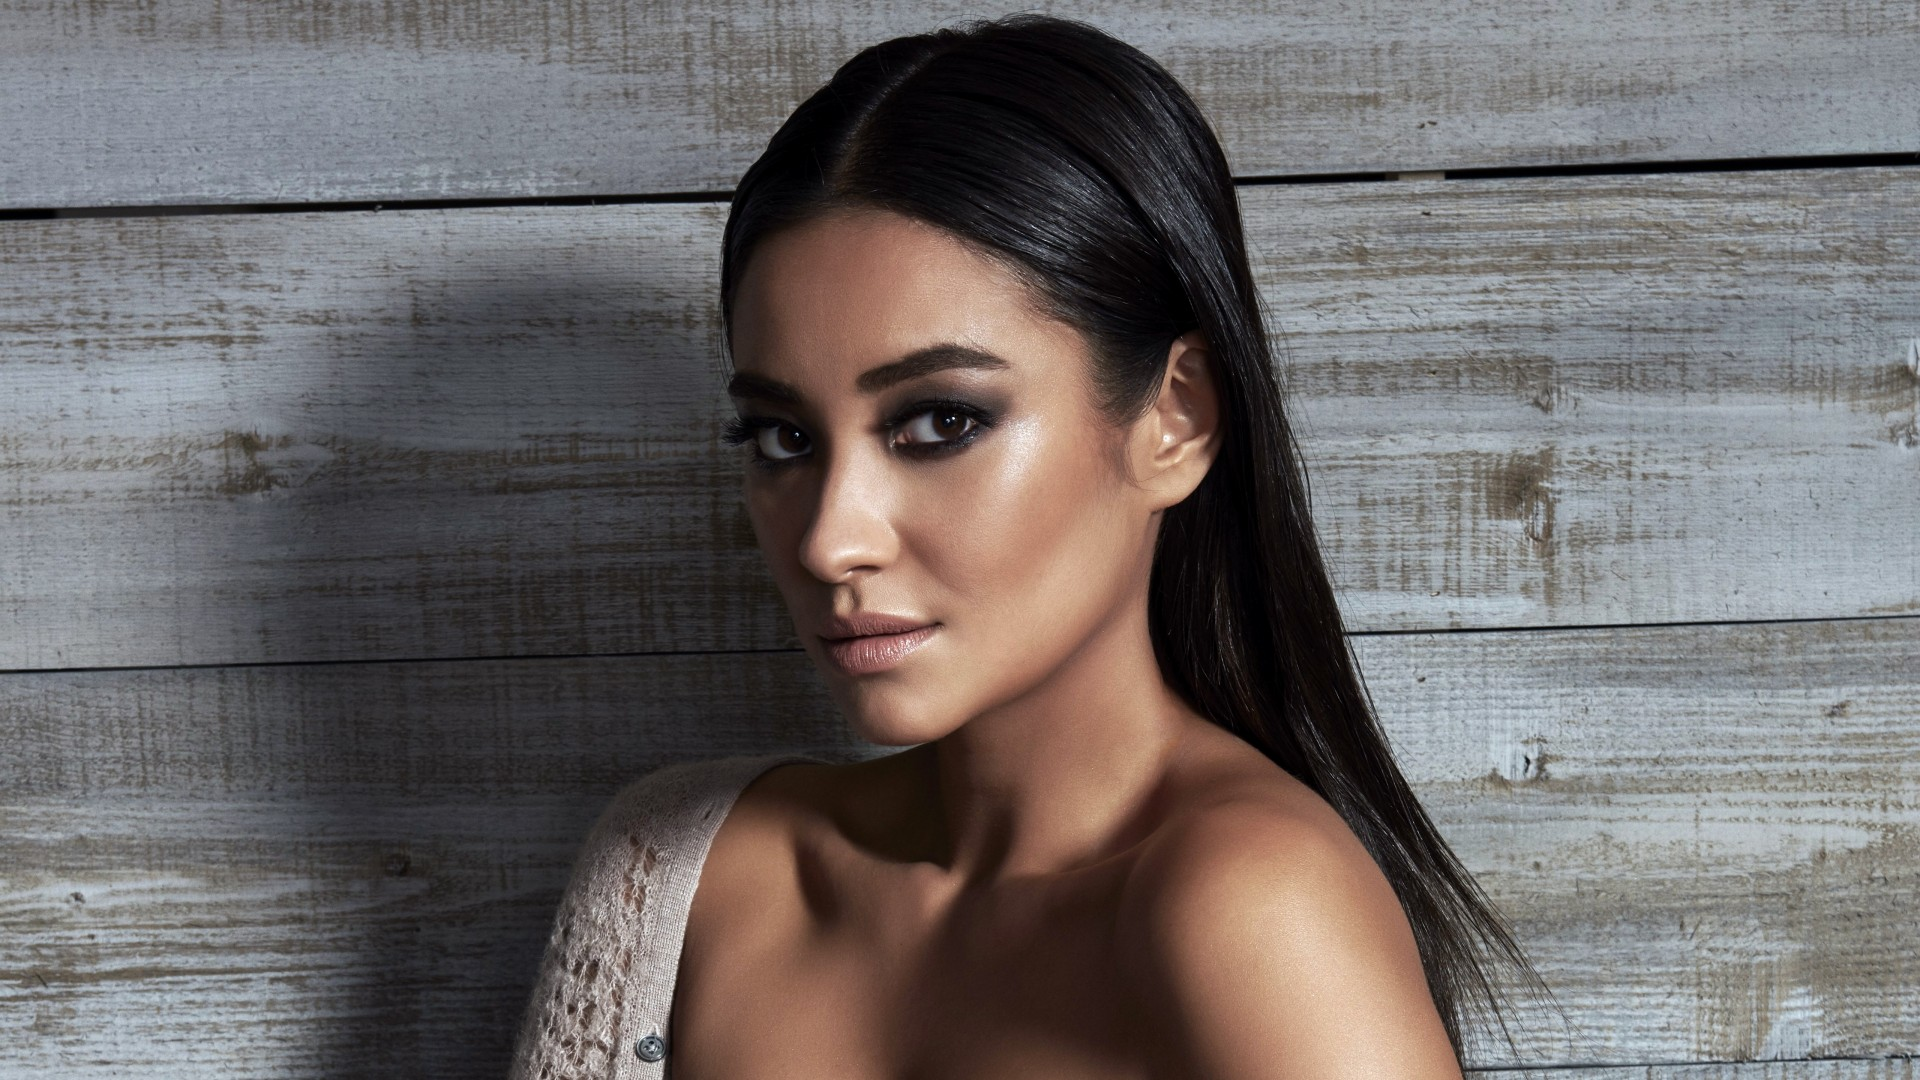 Anime Girl Wallpapers Shay Mitchell Canadian Actress Wallpapers Hd Wallpapers